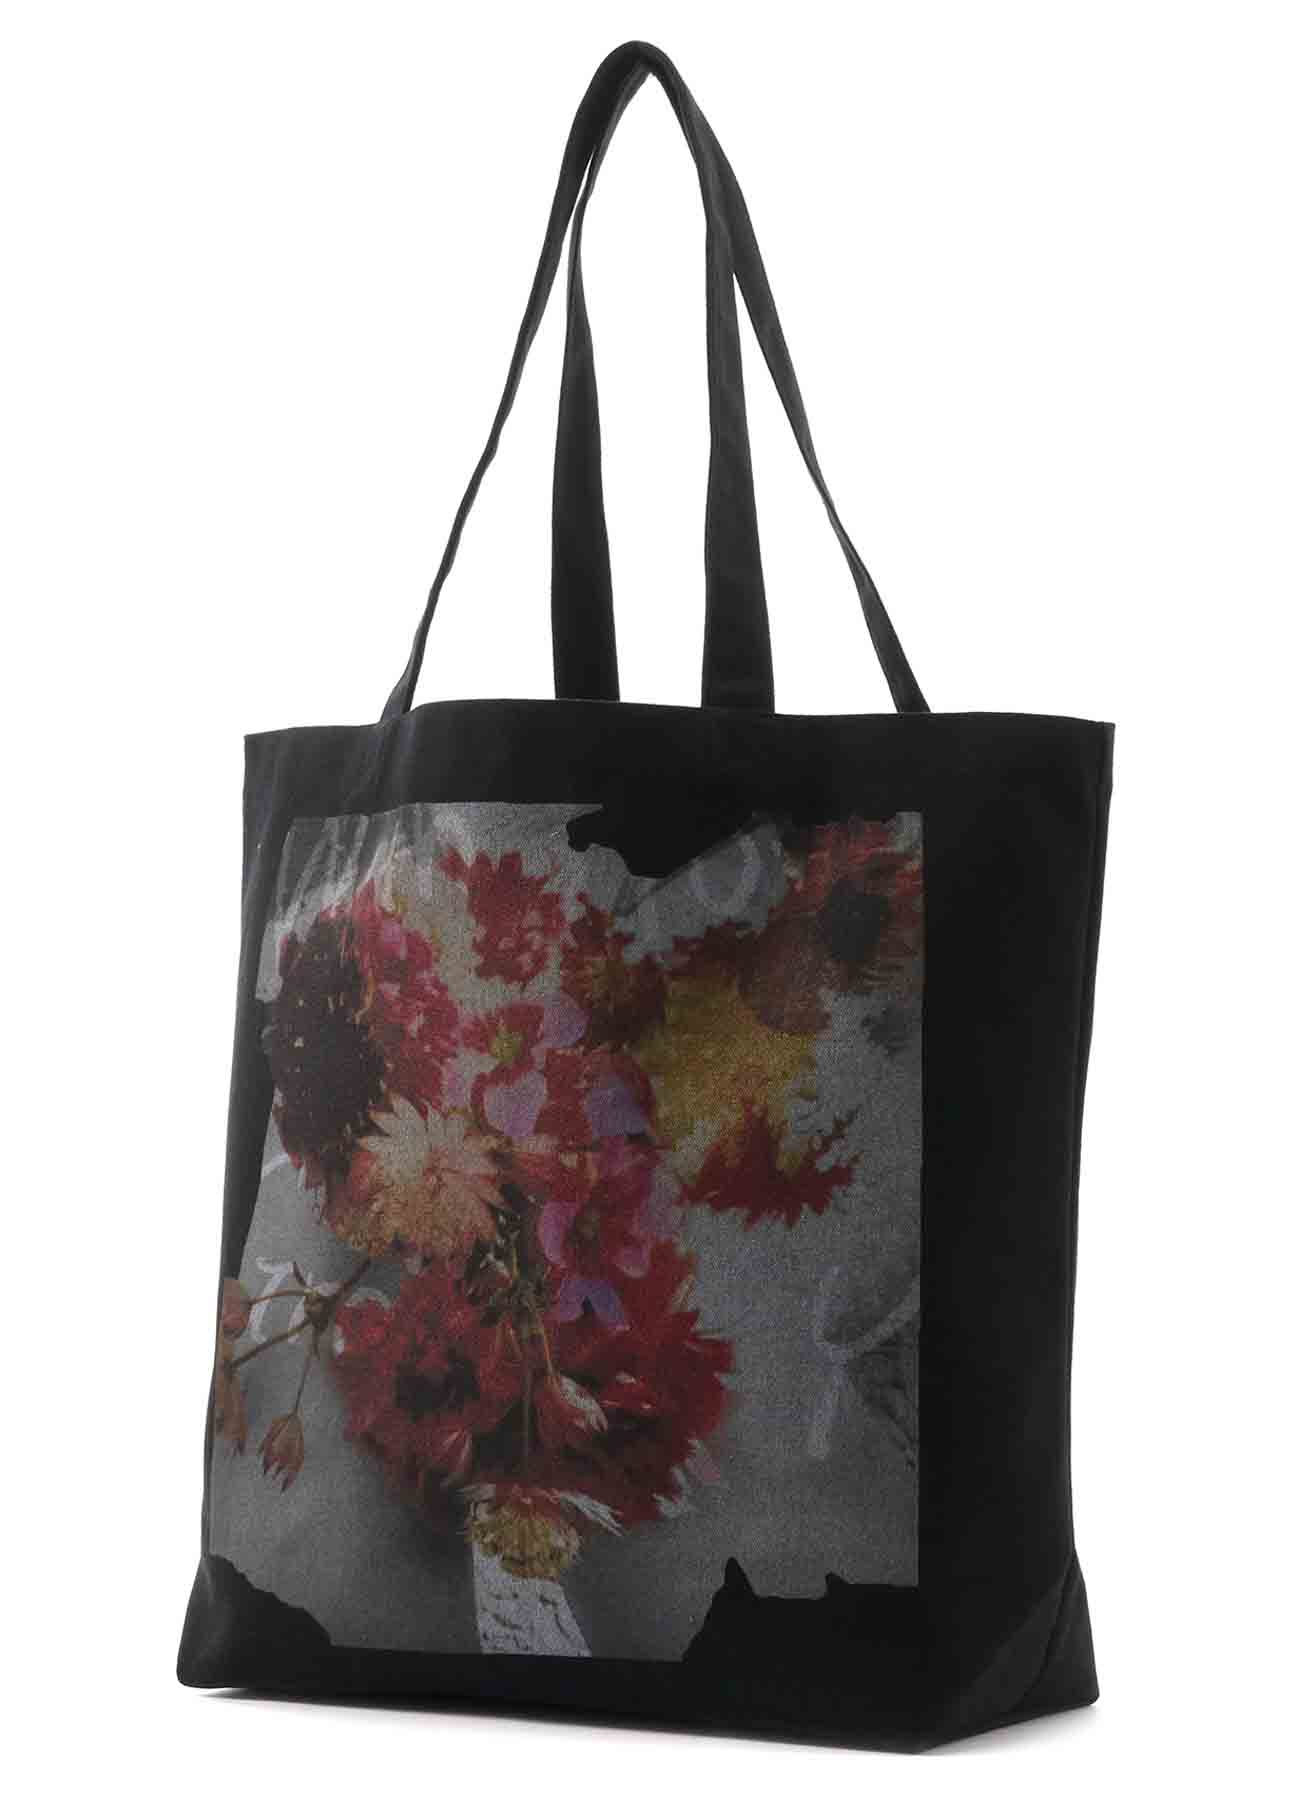 [Flower] Graphic Totebag by 横田ひかる